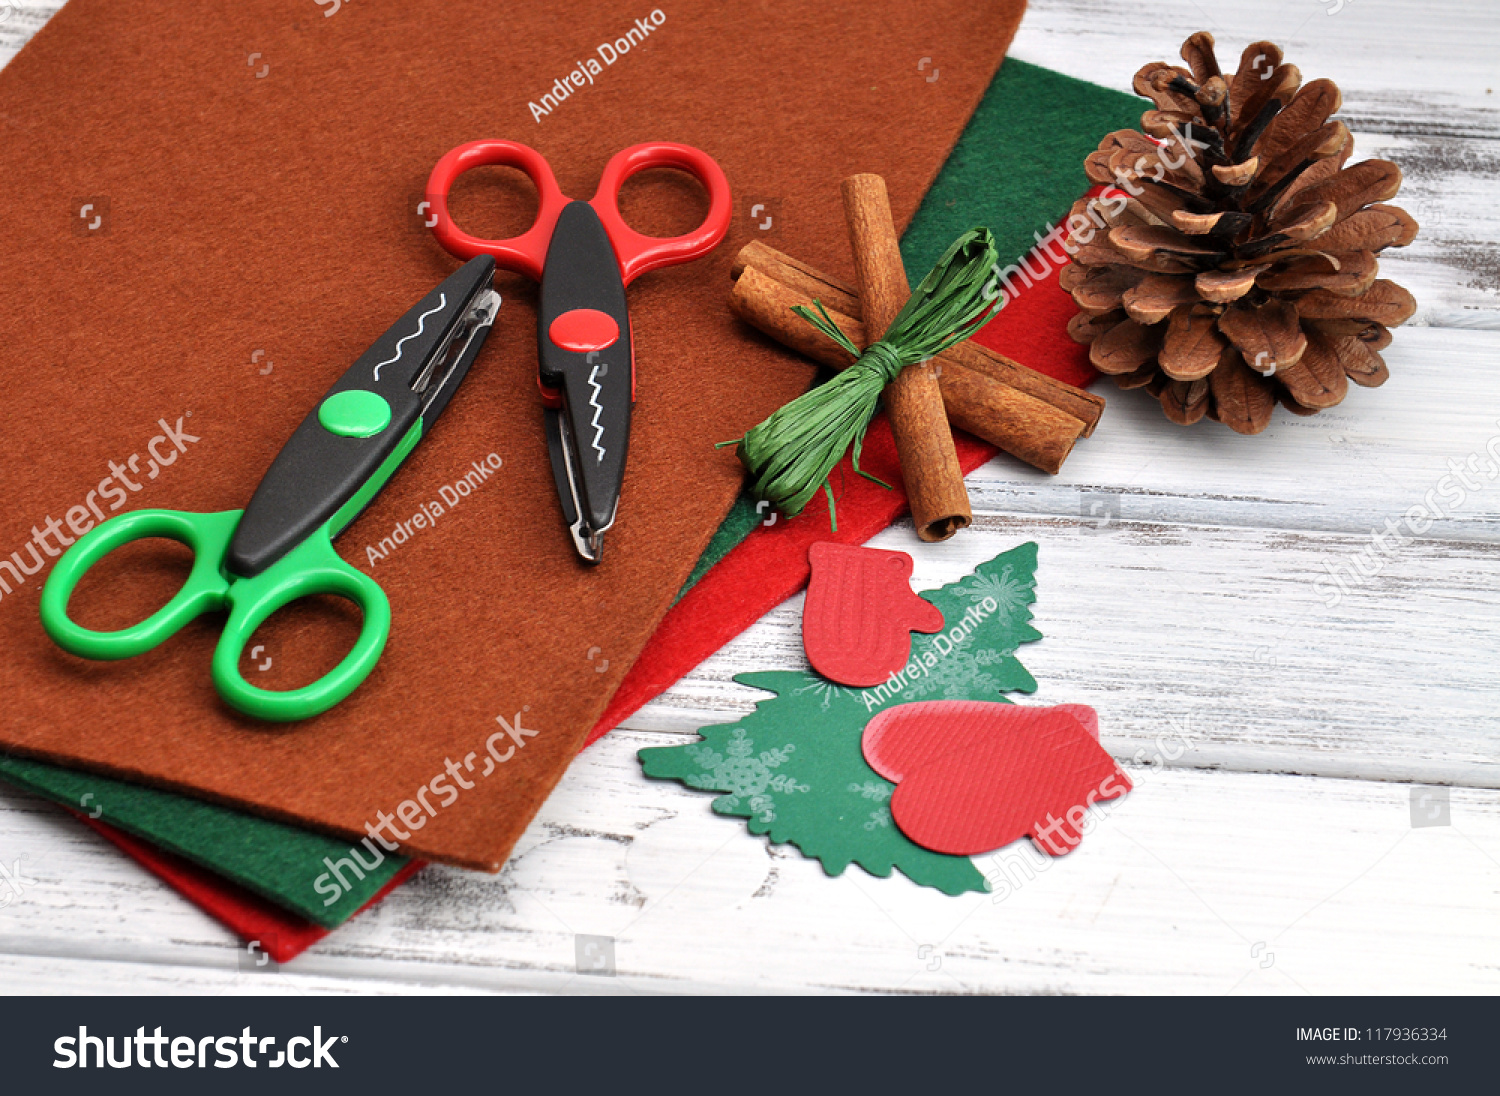 Exceptional Craft Supplies Christmas Part - 9: Christmas Craft Supplies And Ornaments